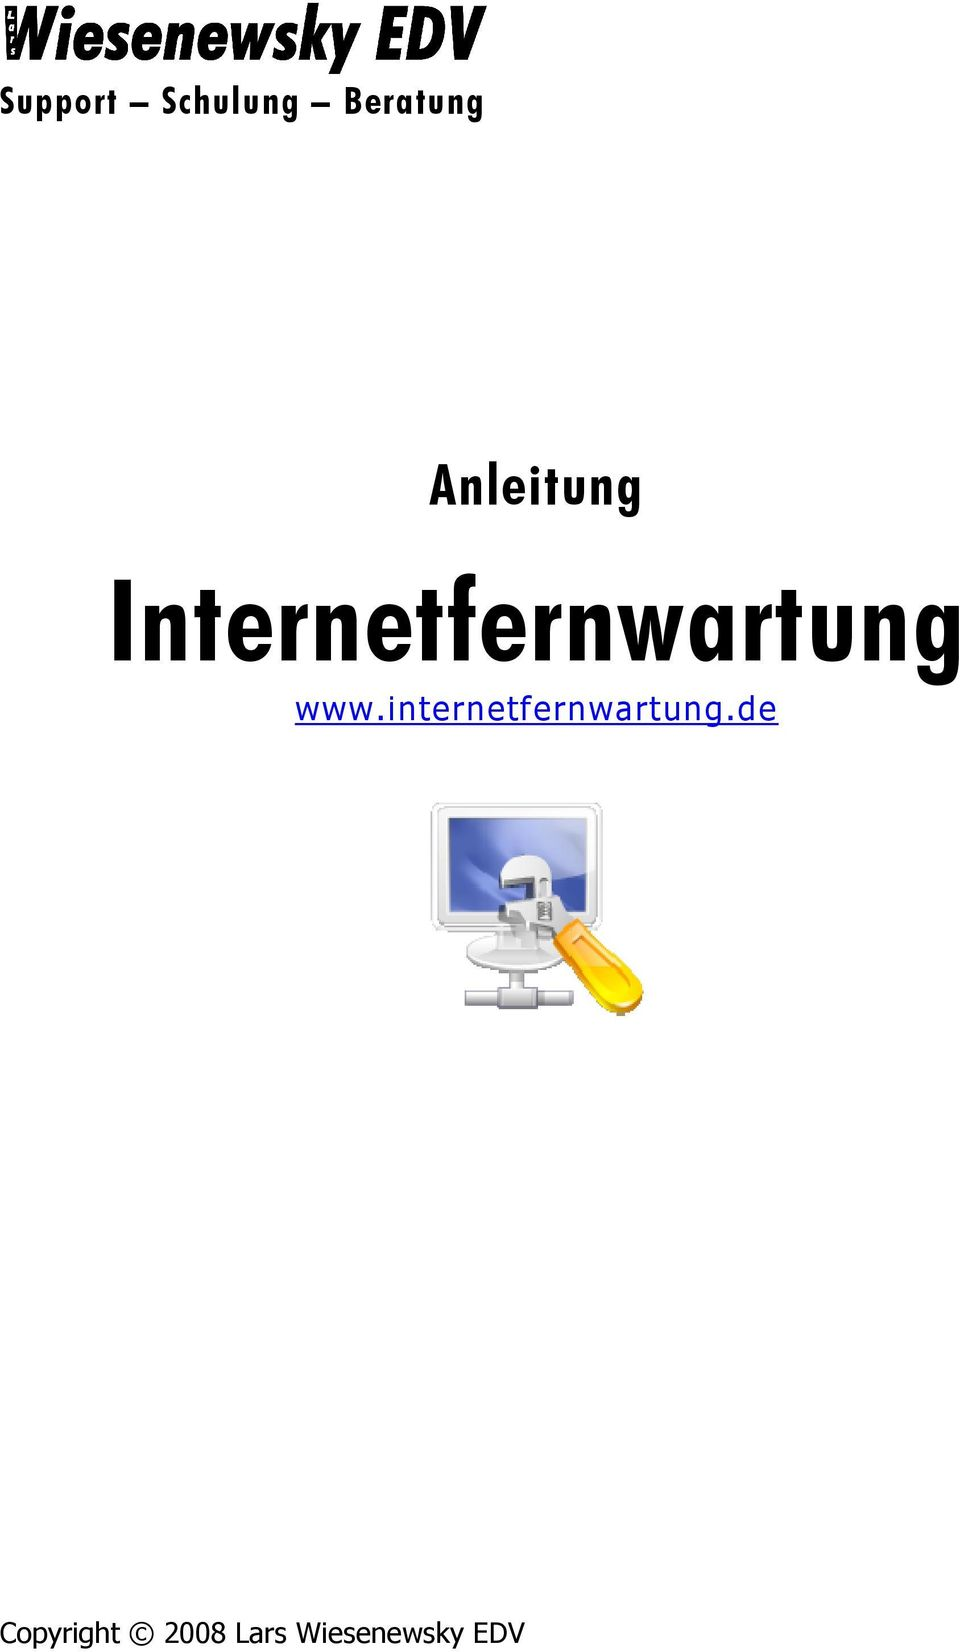 www.internetfernwartung.